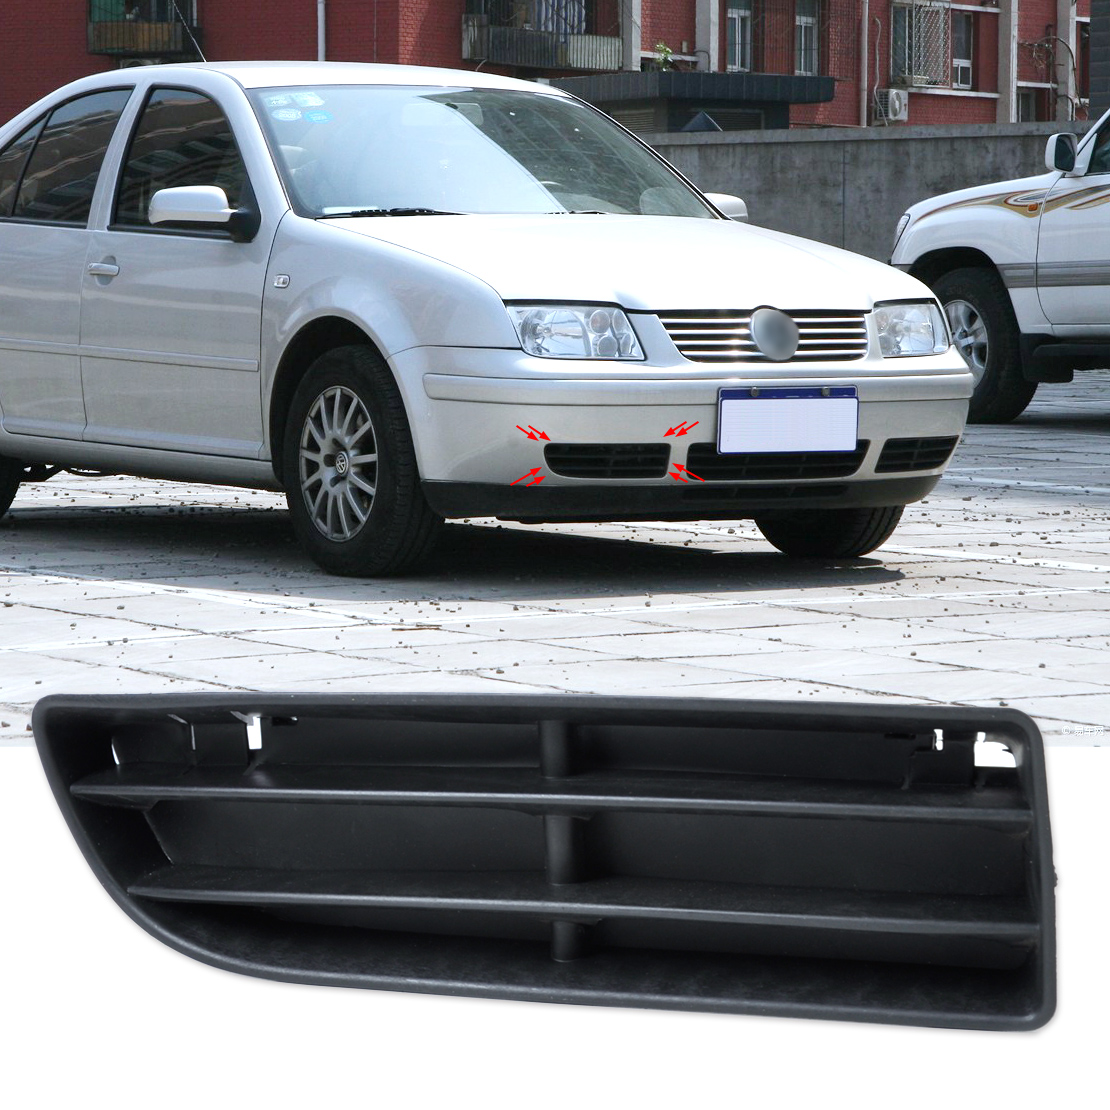 DWCX 1J5853666C Front Right Bumper Lower Grill Vent for VW Volkswagen Jetta Bora MK4 1999 2000 2001 2002 2003 2004 free shipping original 0258007227 17014 0258007351 0258007057 fits for 99 05 vw jetta 1 8l l4 oxygen sensor front upstream